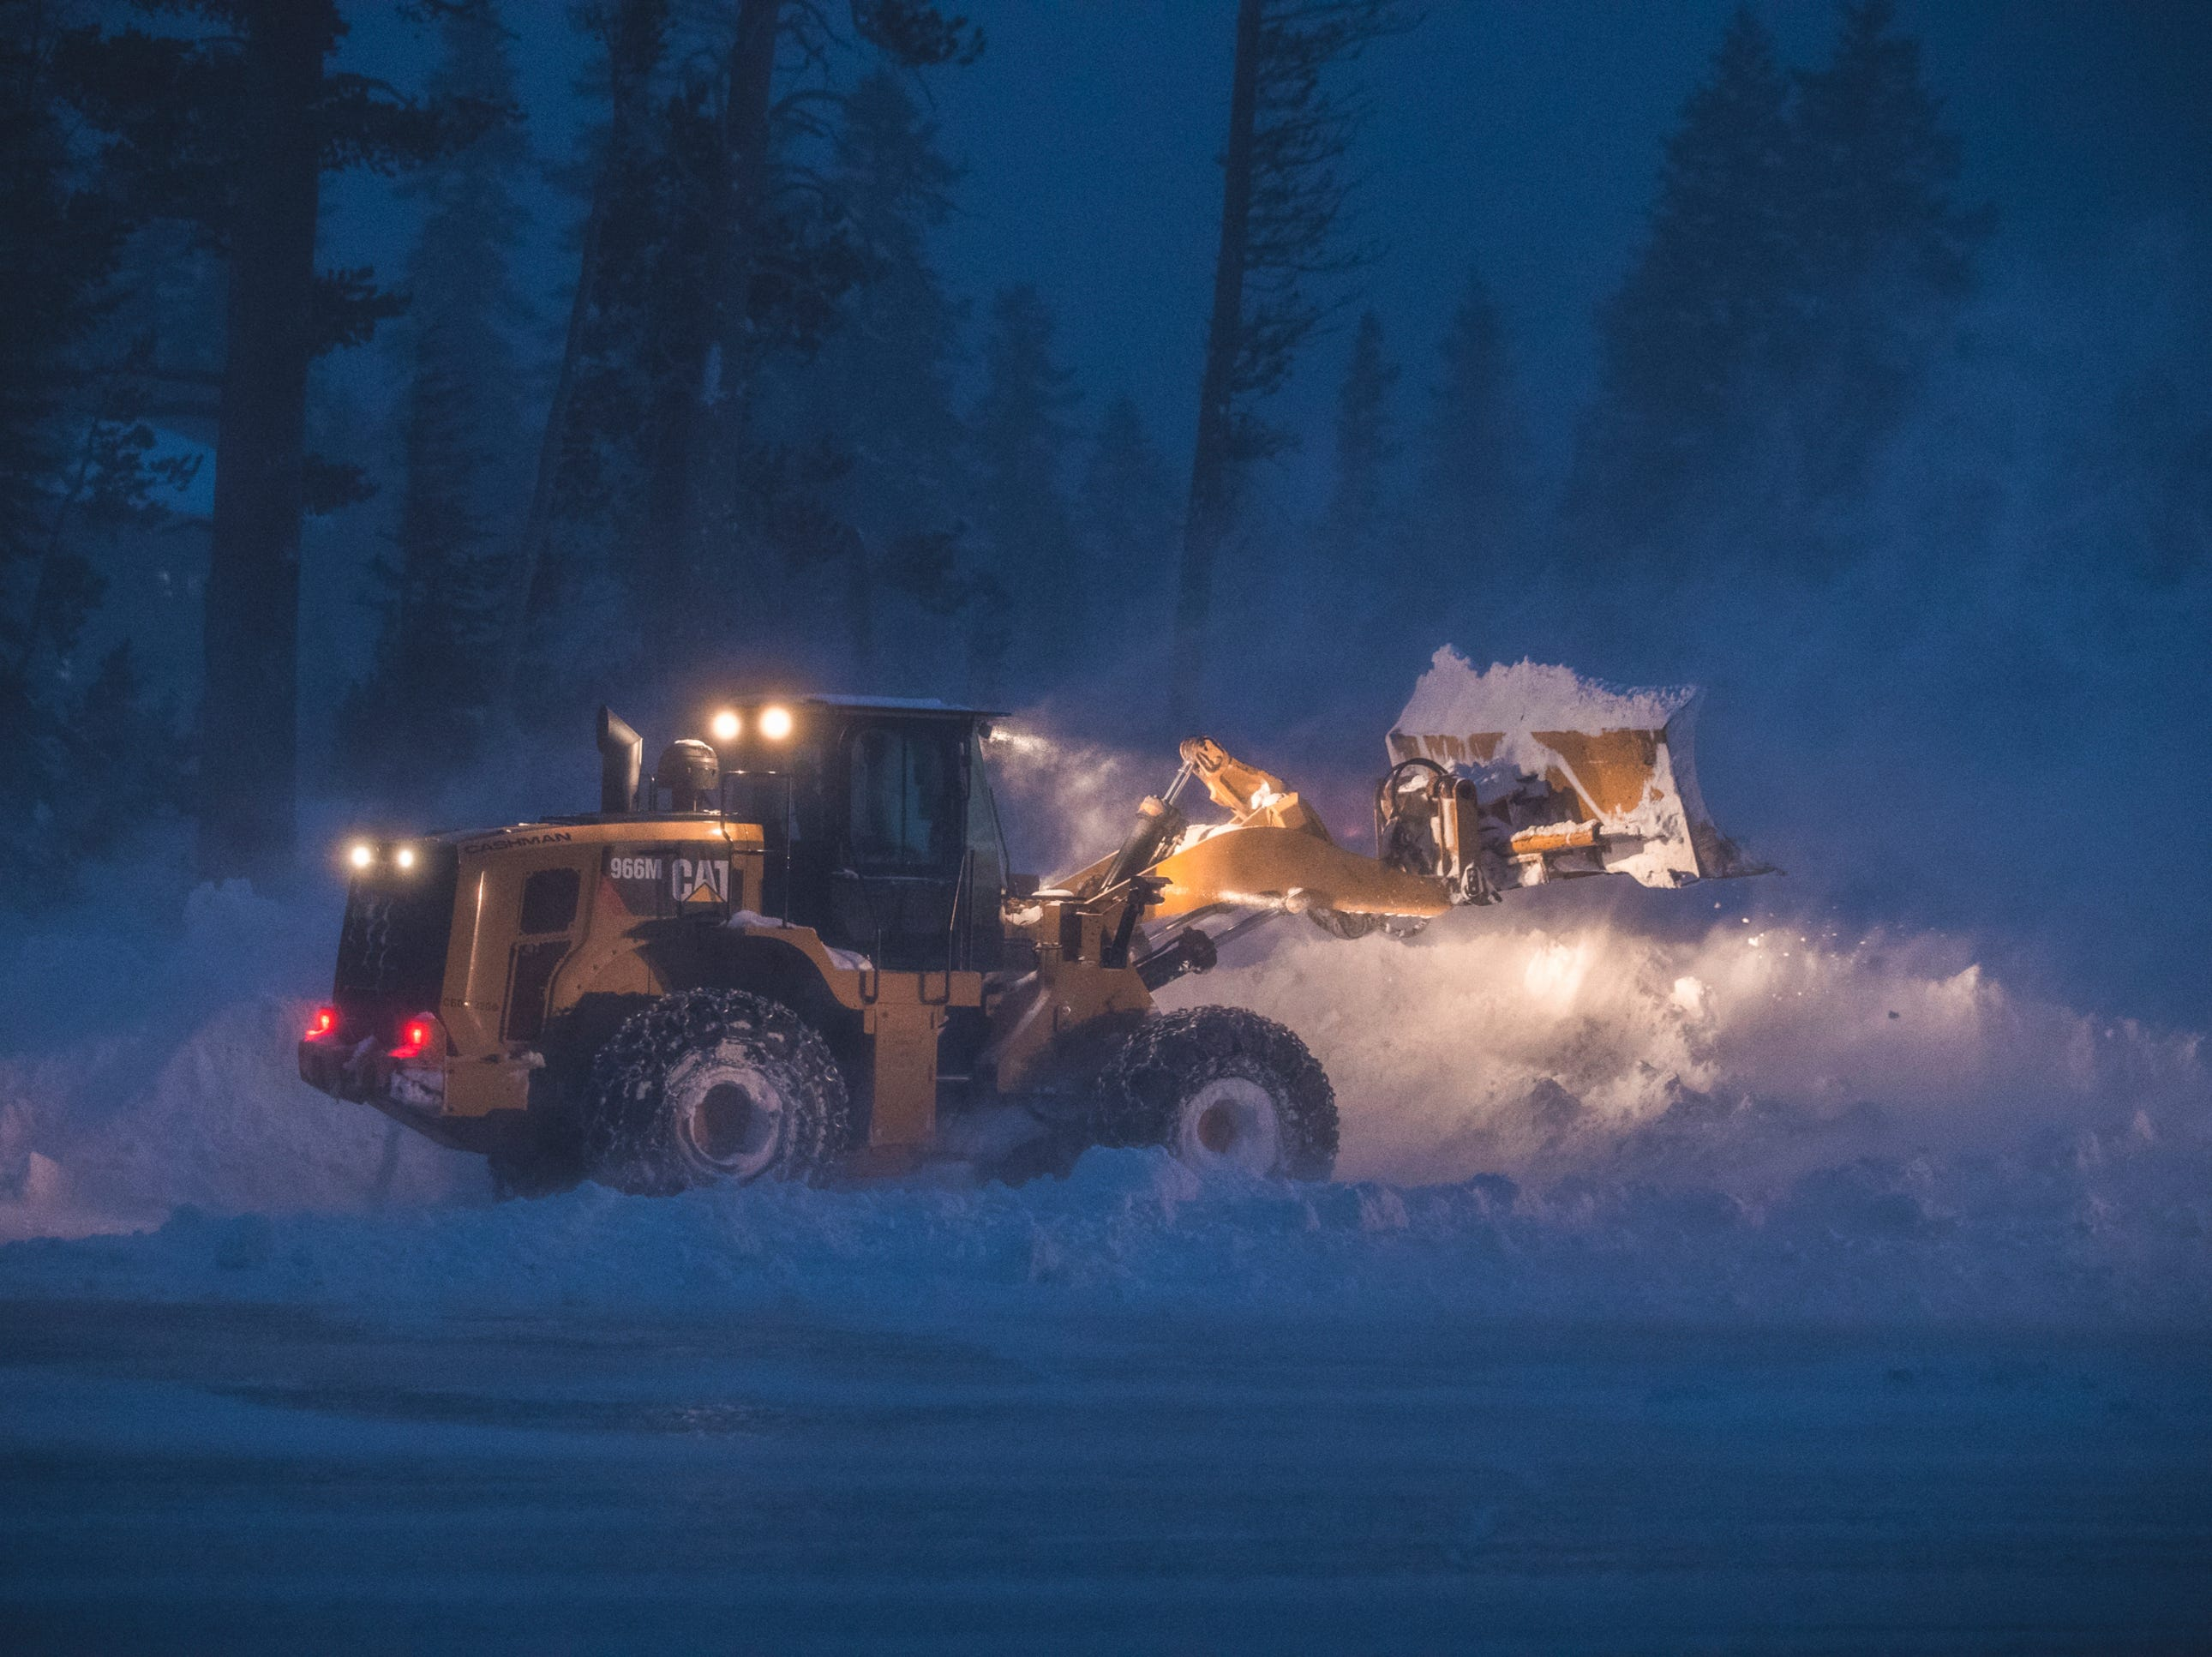 This photo provided by Mammoth Mountain Ski Area shows crew clearing fresh snow fall at Mammoth Mountain ski area, in Mammoth Lakes, Calif., Wednesday, Jan. 16, 2019.